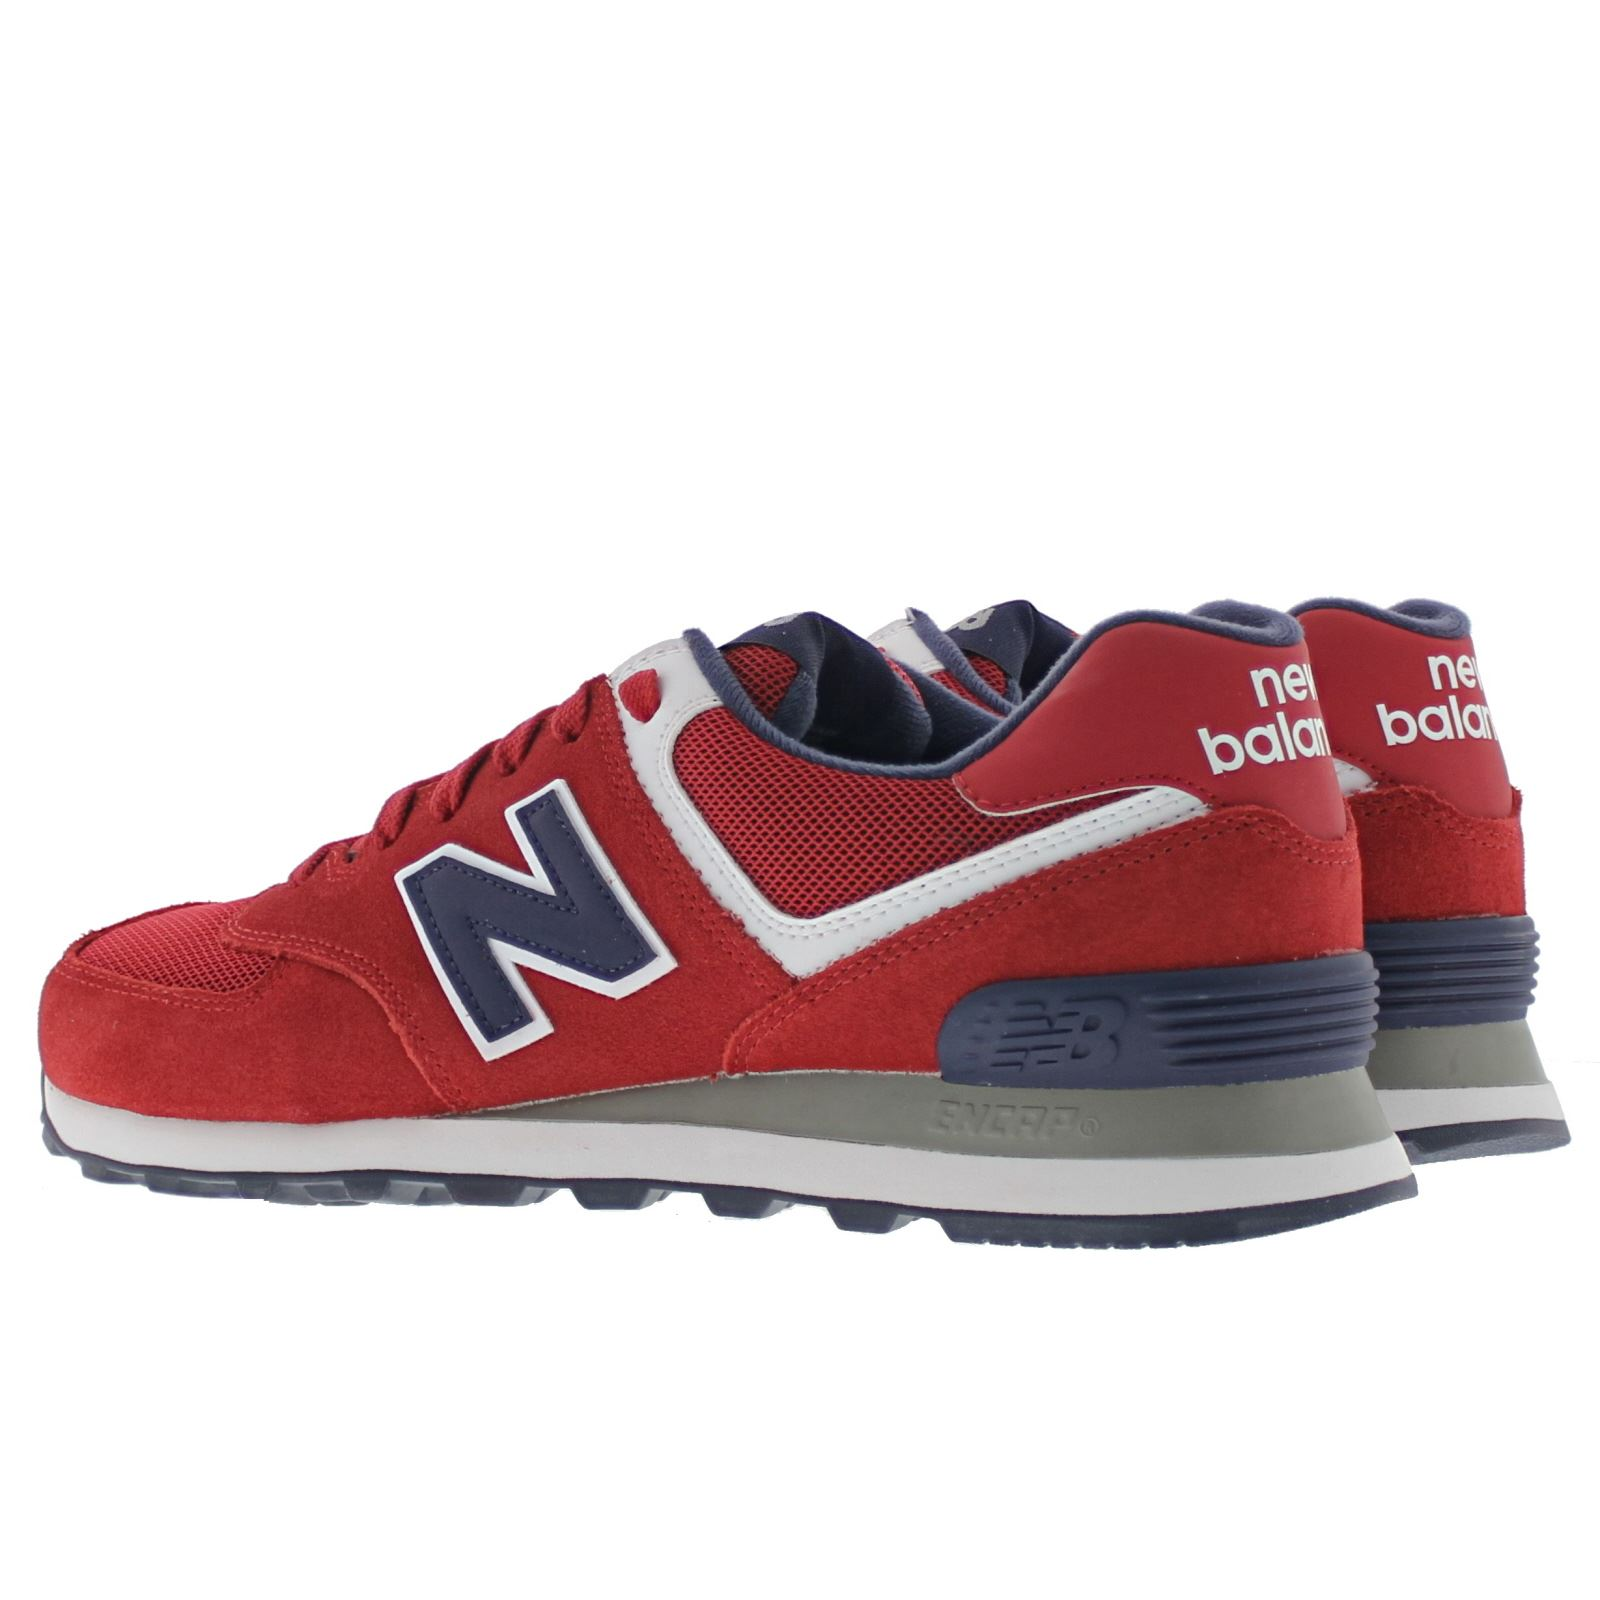 new balance classic ml574 leather mens trainers ebay. Black Bedroom Furniture Sets. Home Design Ideas